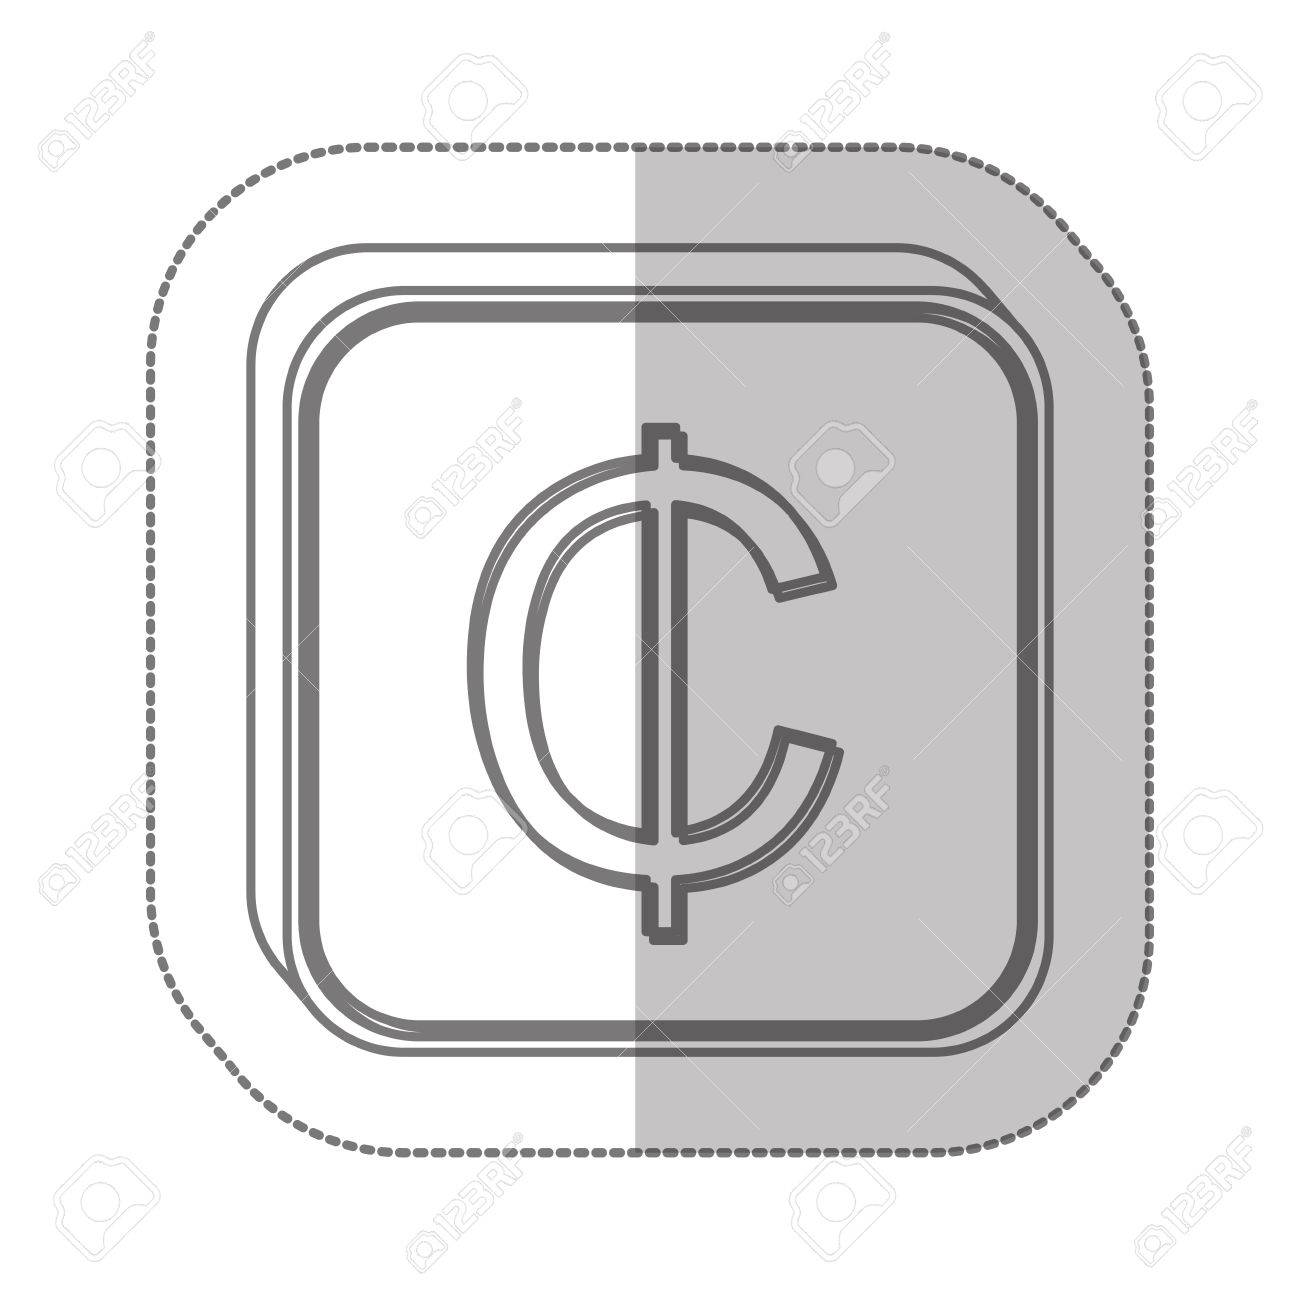 Ghanaian Cedi Currency Symbol Icon Image Vector Illustration